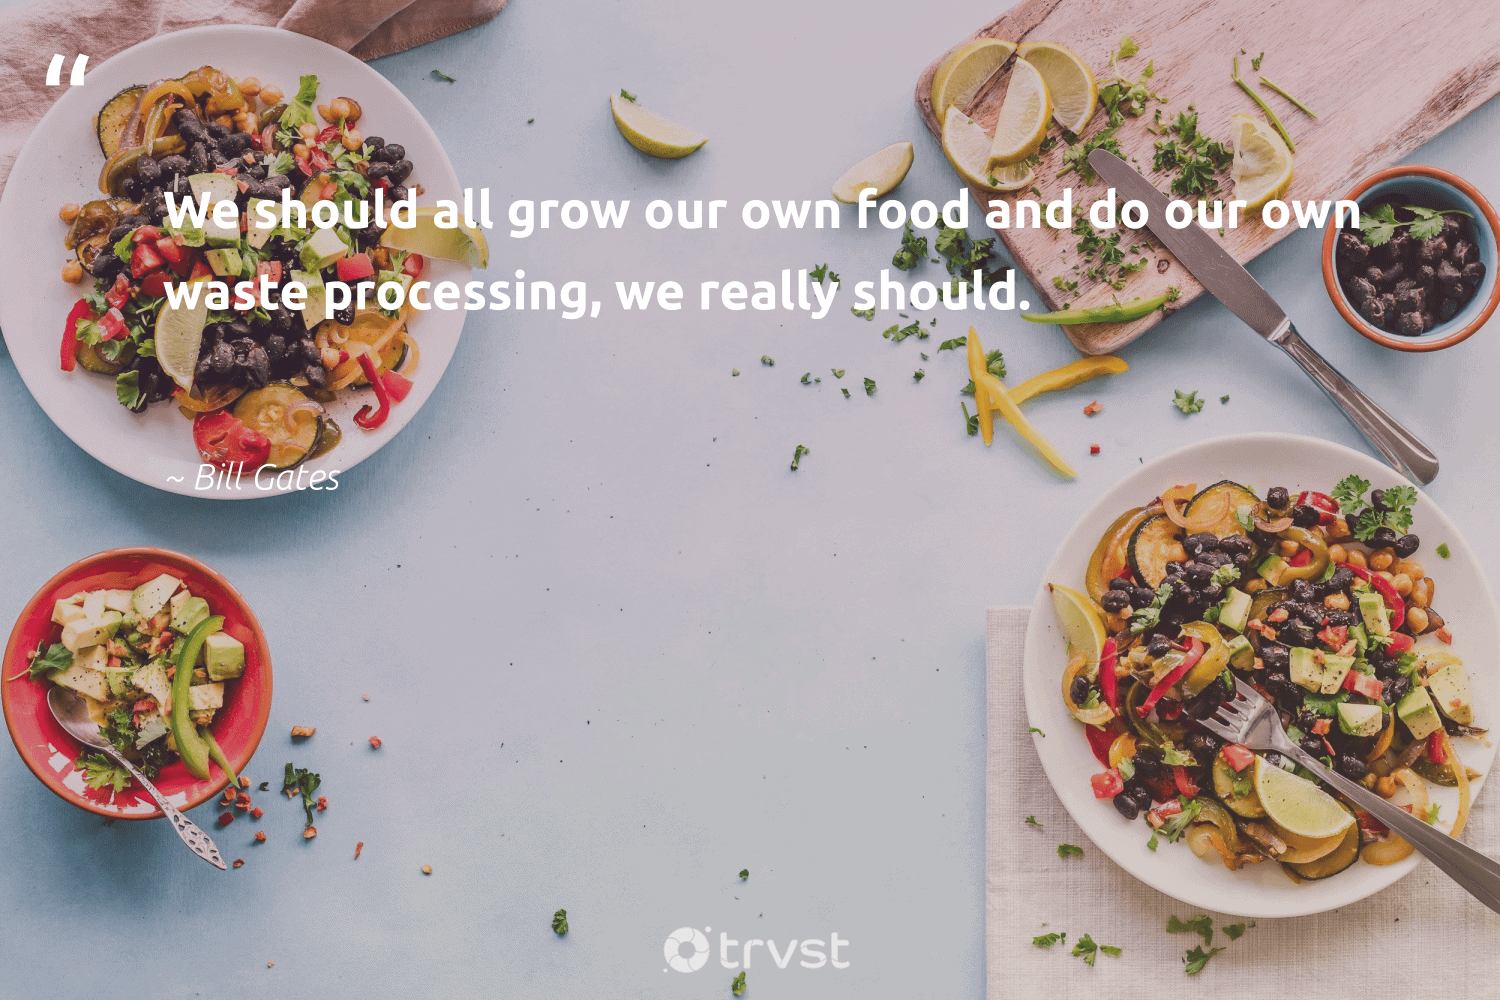 """""""We should all grow our own food and do our own waste processing, we really should.""""  - Bill Gates #trvst #quotes #waste #food #hunger #carefornature #sustainablefutures #thinkgreen #hungry #planetearthfirst #equalrights #gogreen"""